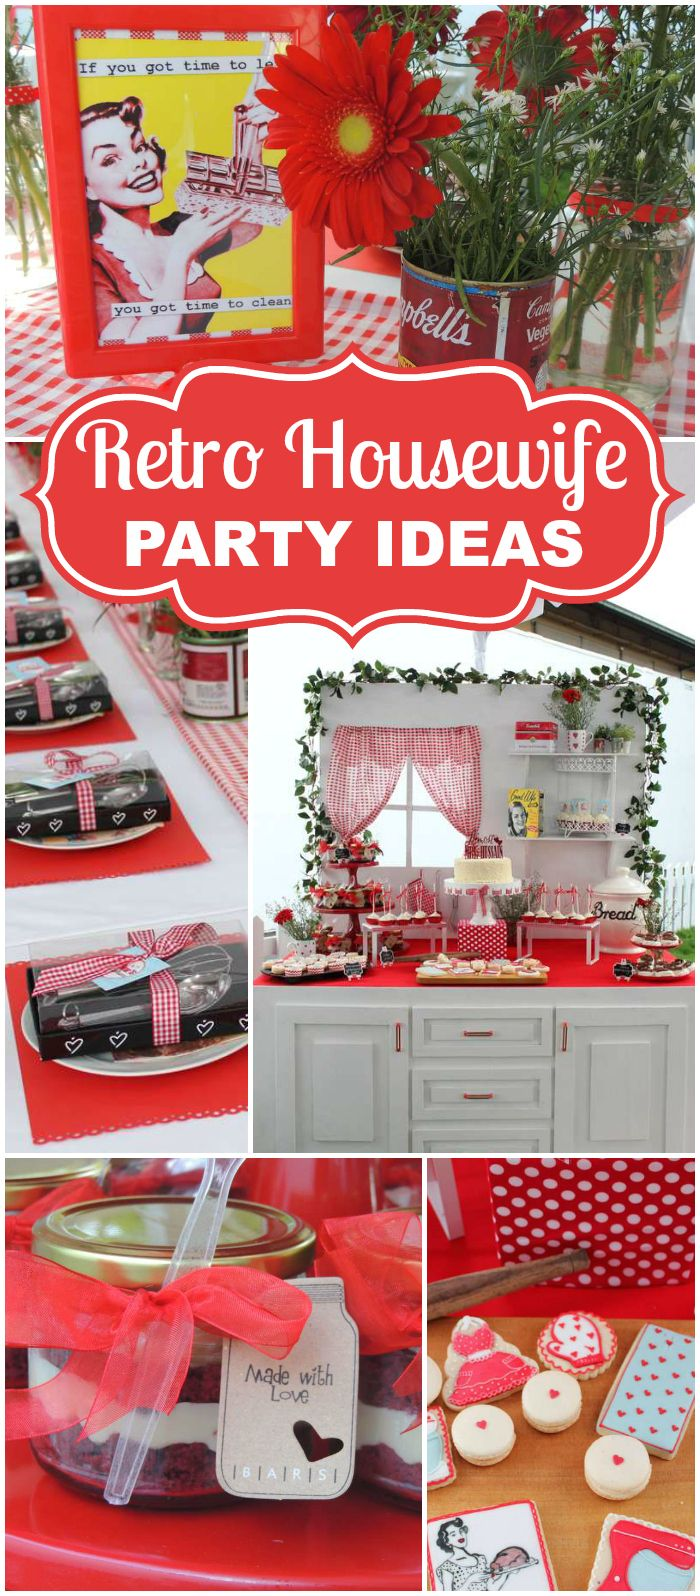 retro housewife party bridalwedding shower sabees nifty housewife party in 2018 birthday party various ideas pinterest bridal shower